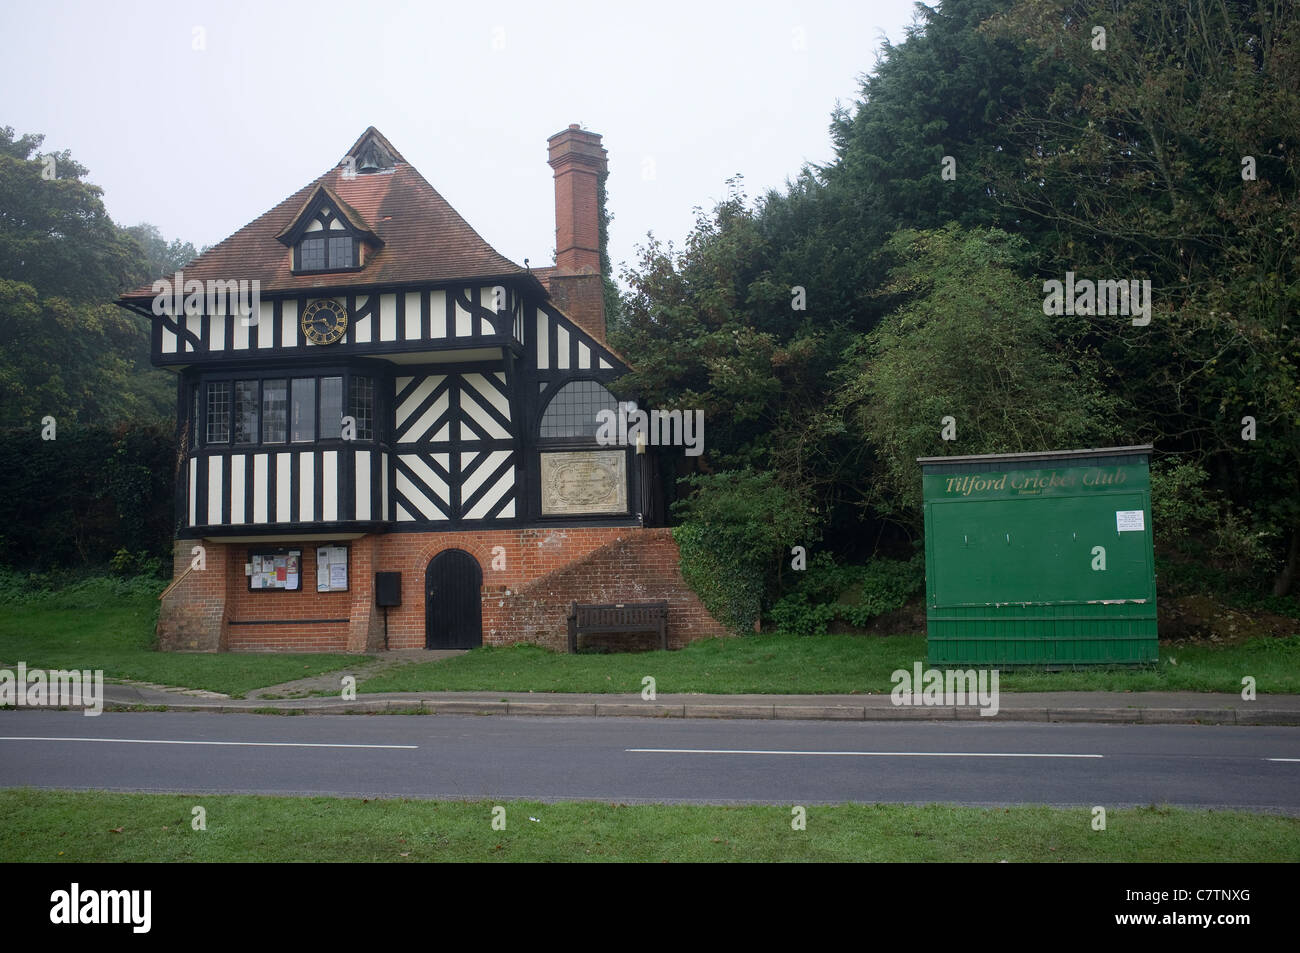 Tilford Institute -1 - Stock Image